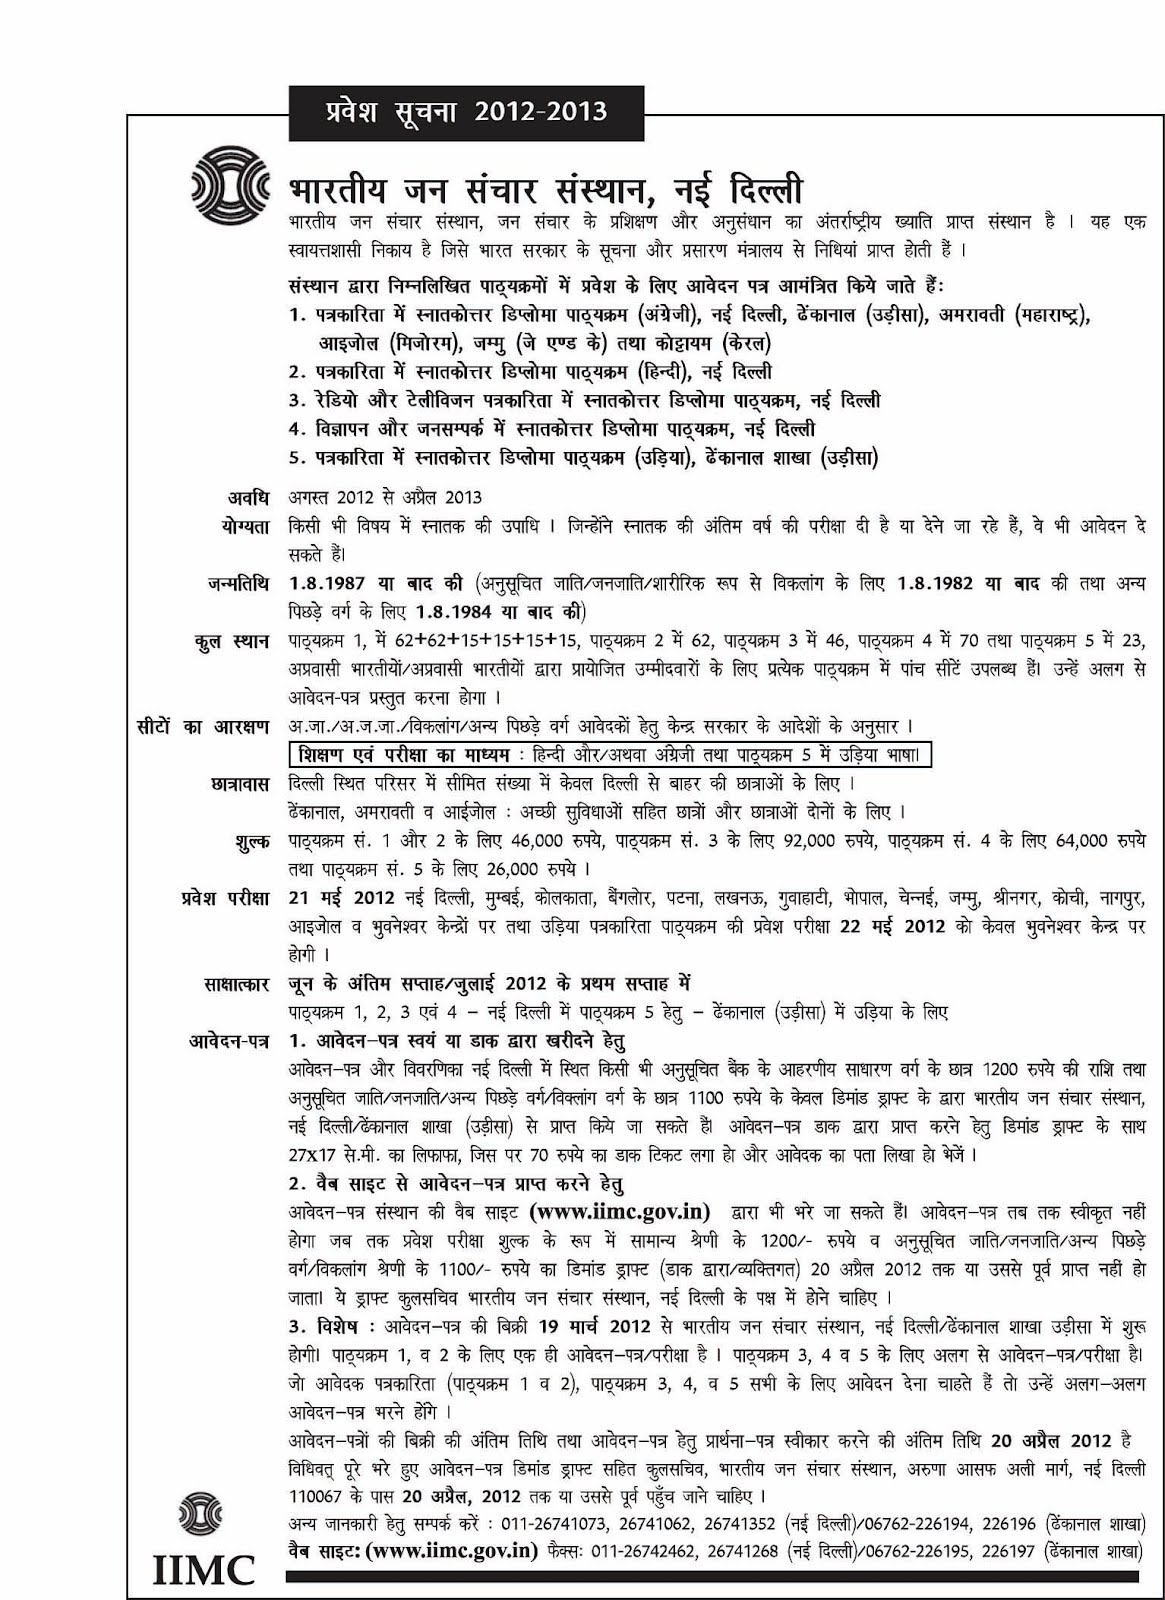 mera parivar essay Essay on mera parivar november 15, 2017 / by author issuu is a digital publishing platform persasive essay that makes it essay on mera parivar news essay topics simple to publish magazines, catalogs, newspapers.